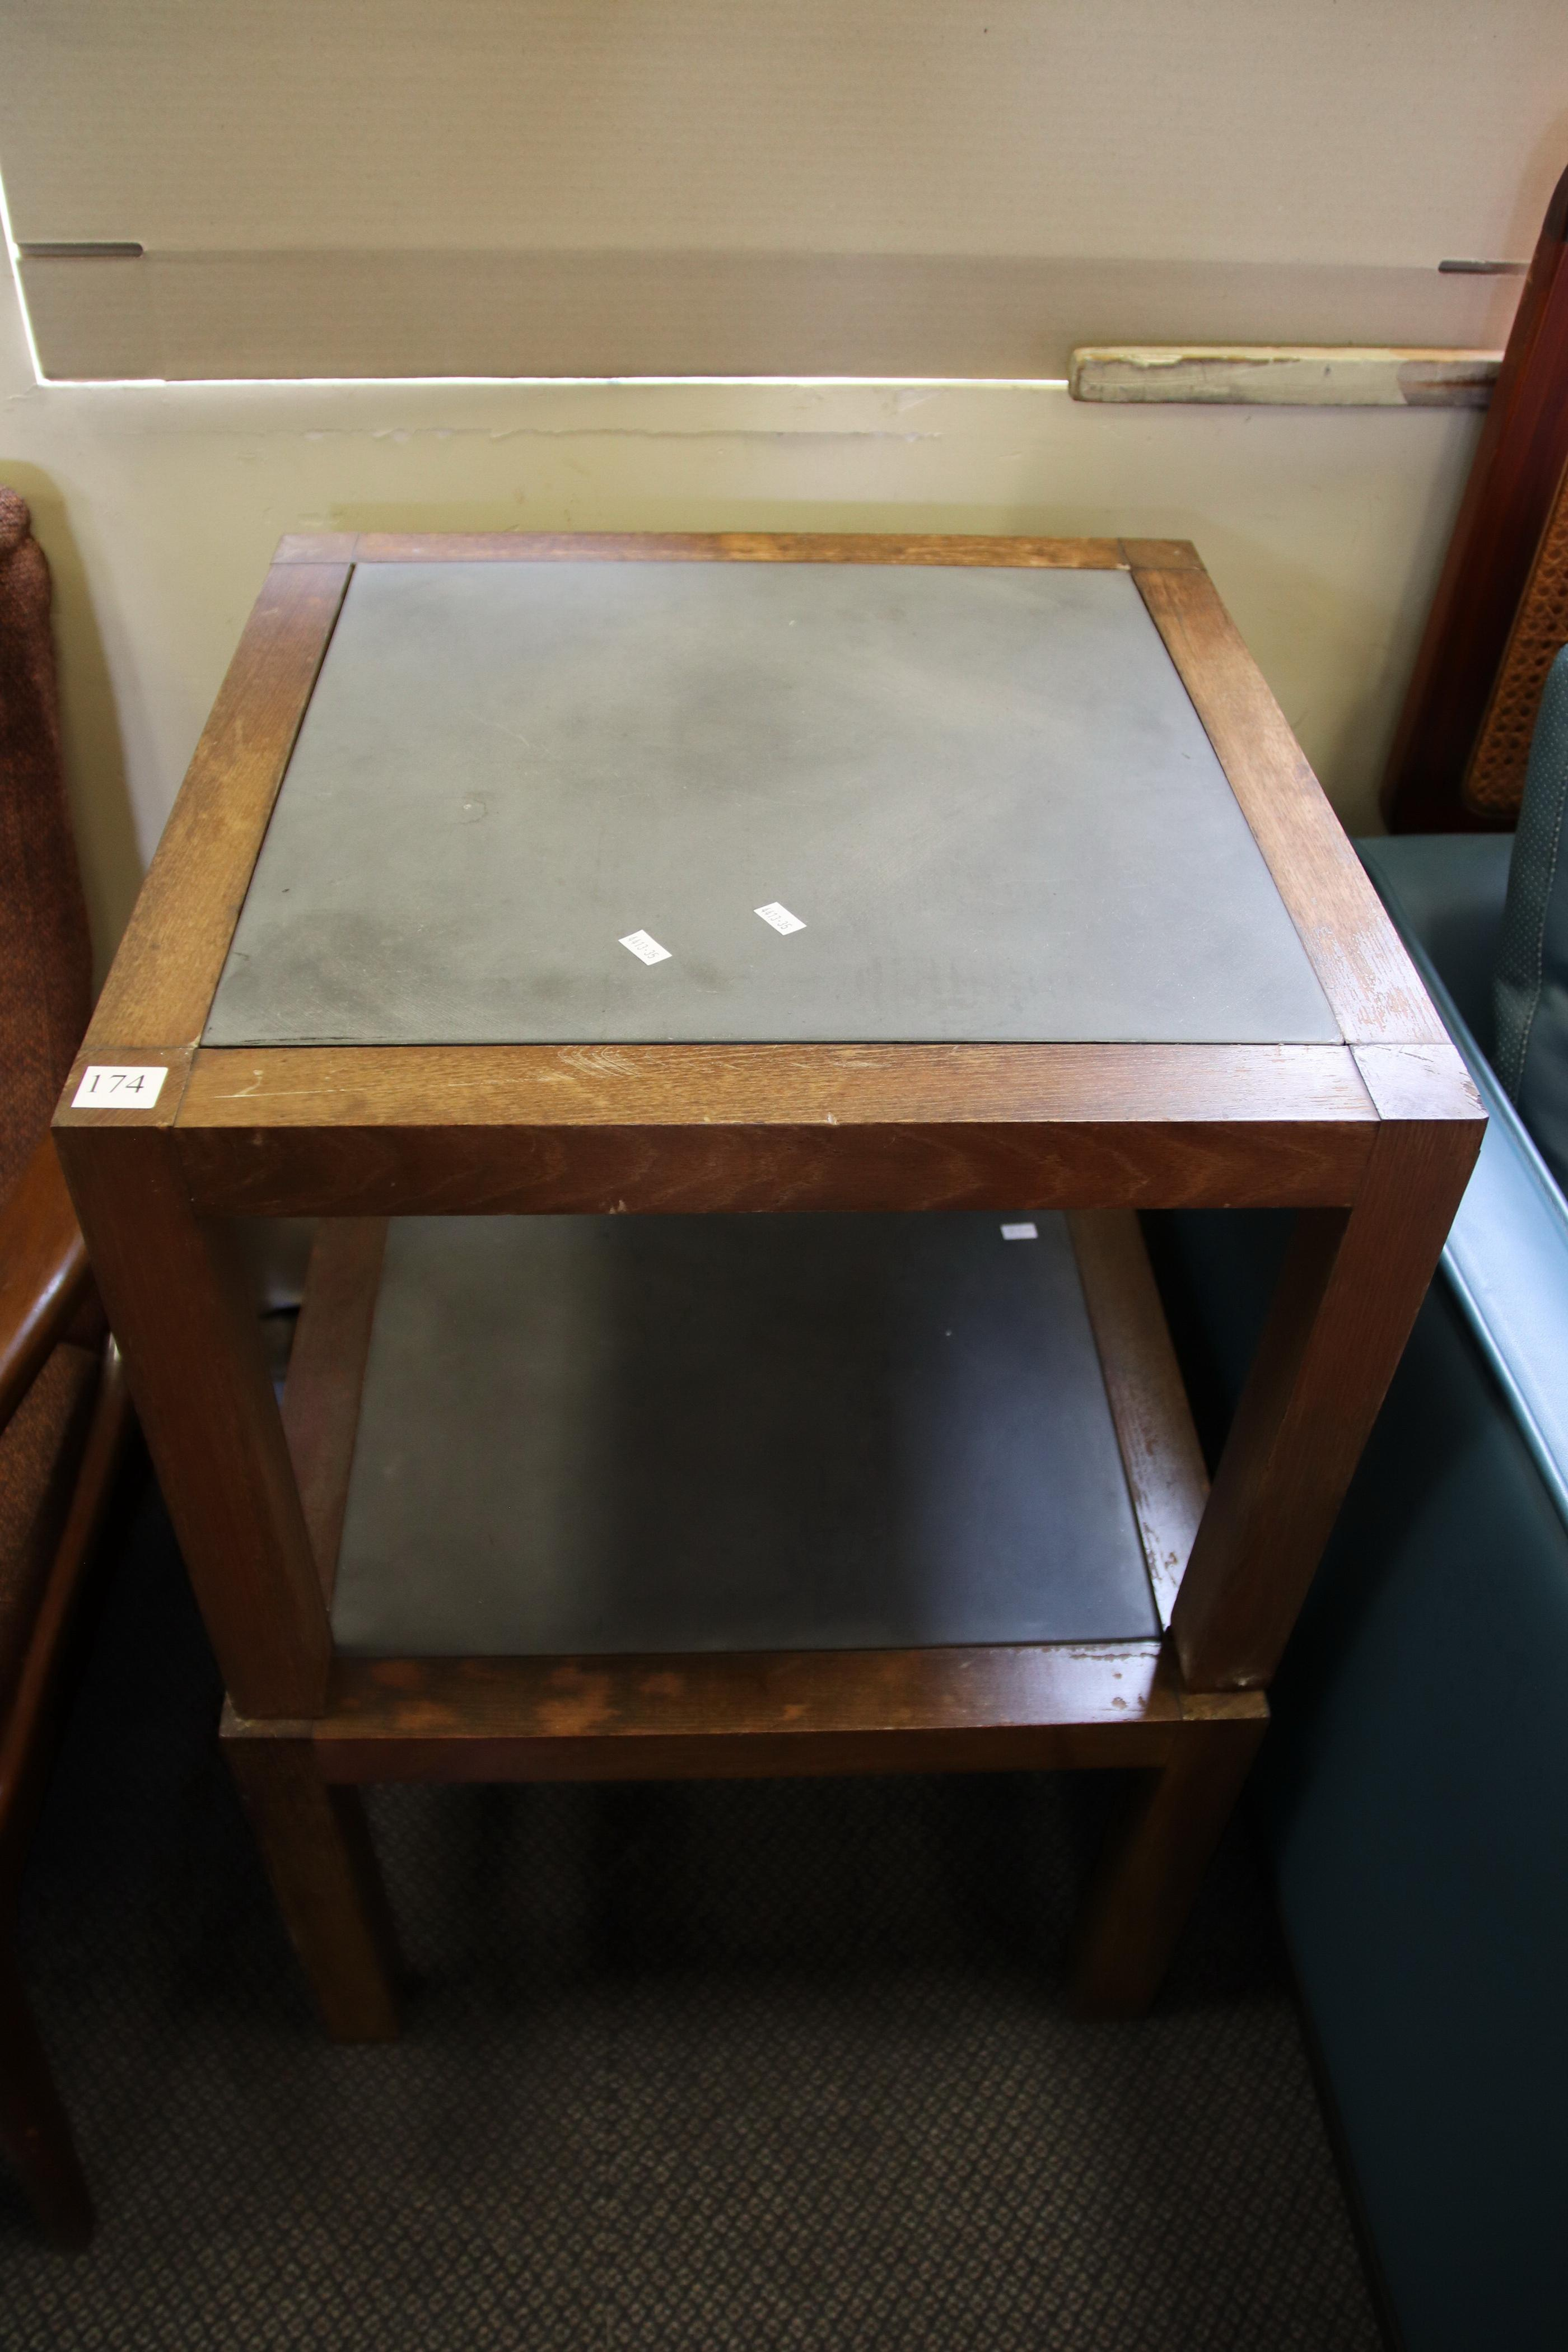 2 RETRO WOOD FRAME SIDE TABLES WITH CONCRETE INSERT TOPS